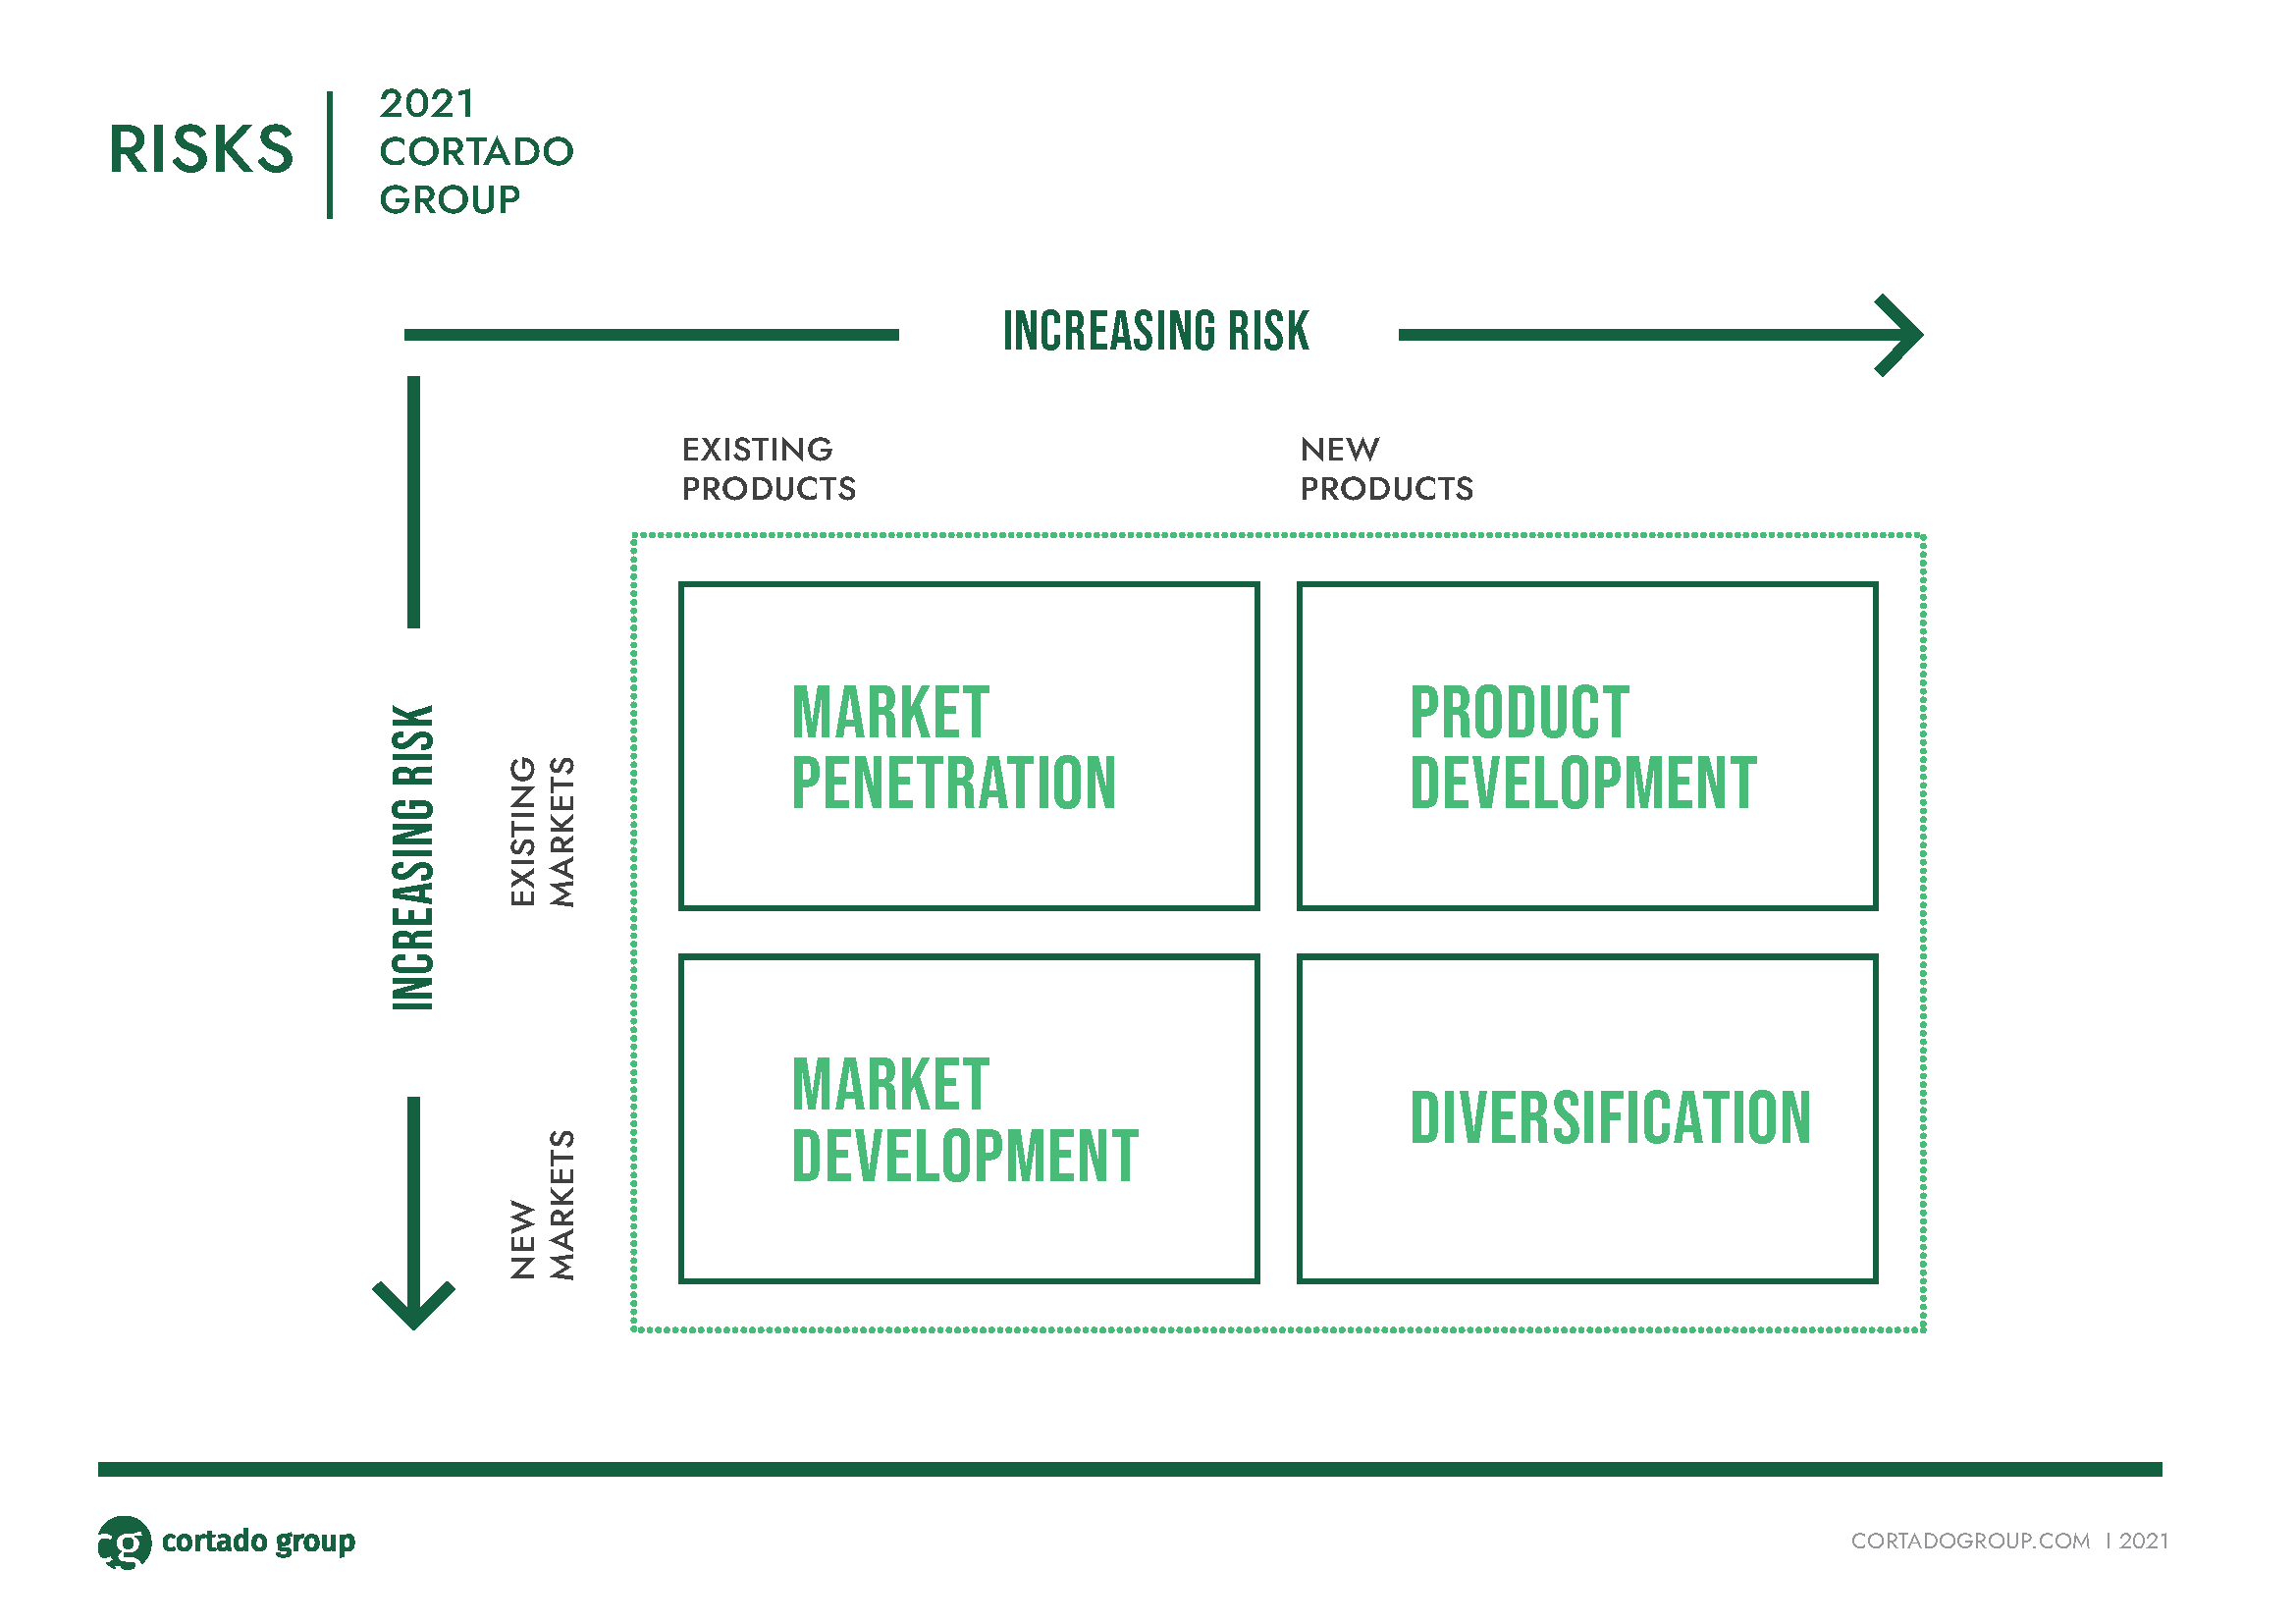 Go-to-Market Strategy and Risk